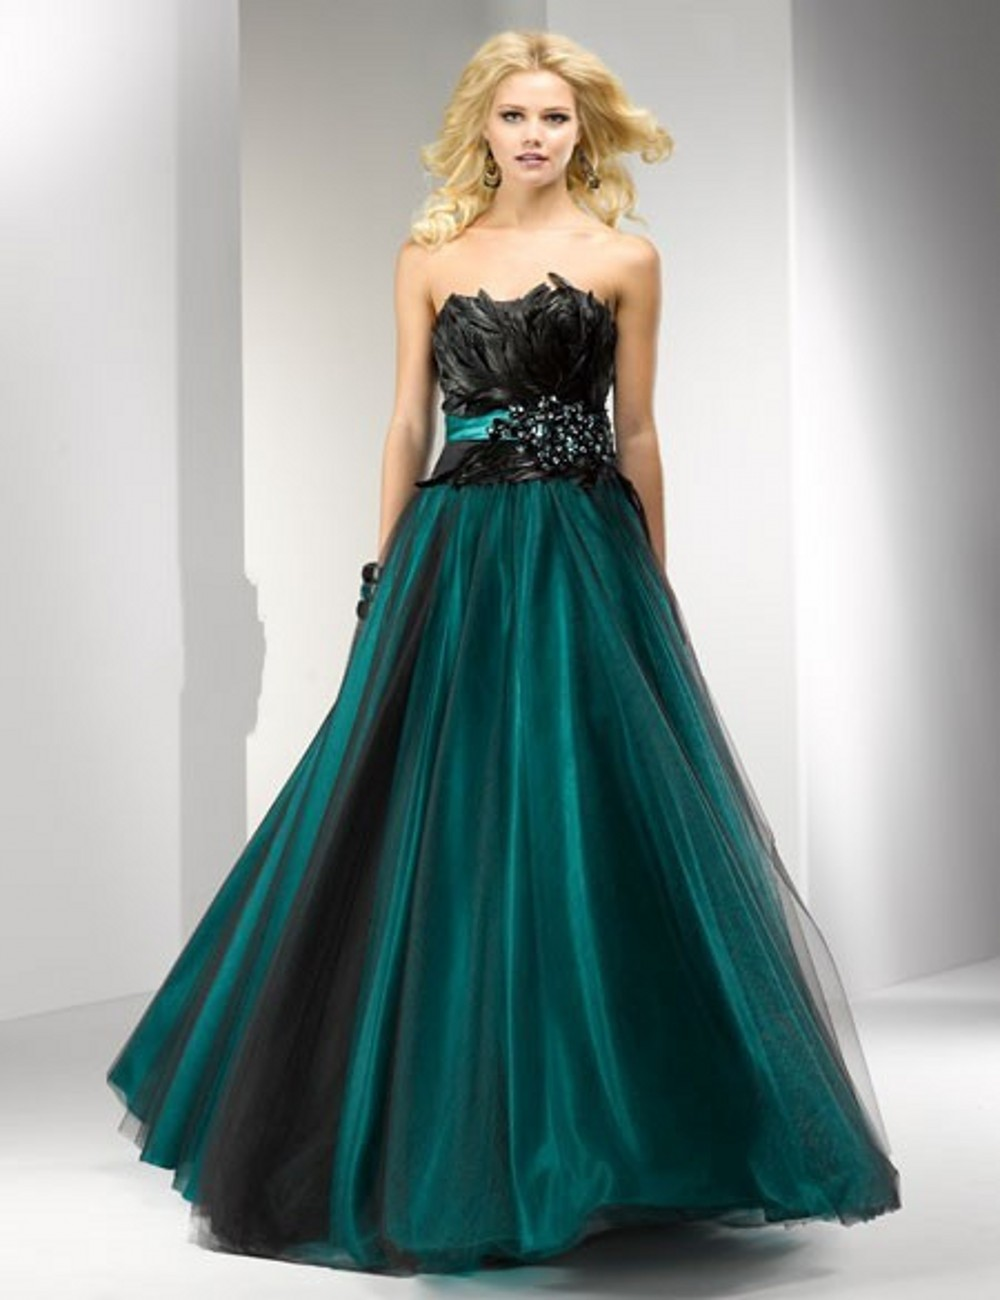 Peacock Ball Gown Prom Dresses Dress On Sale